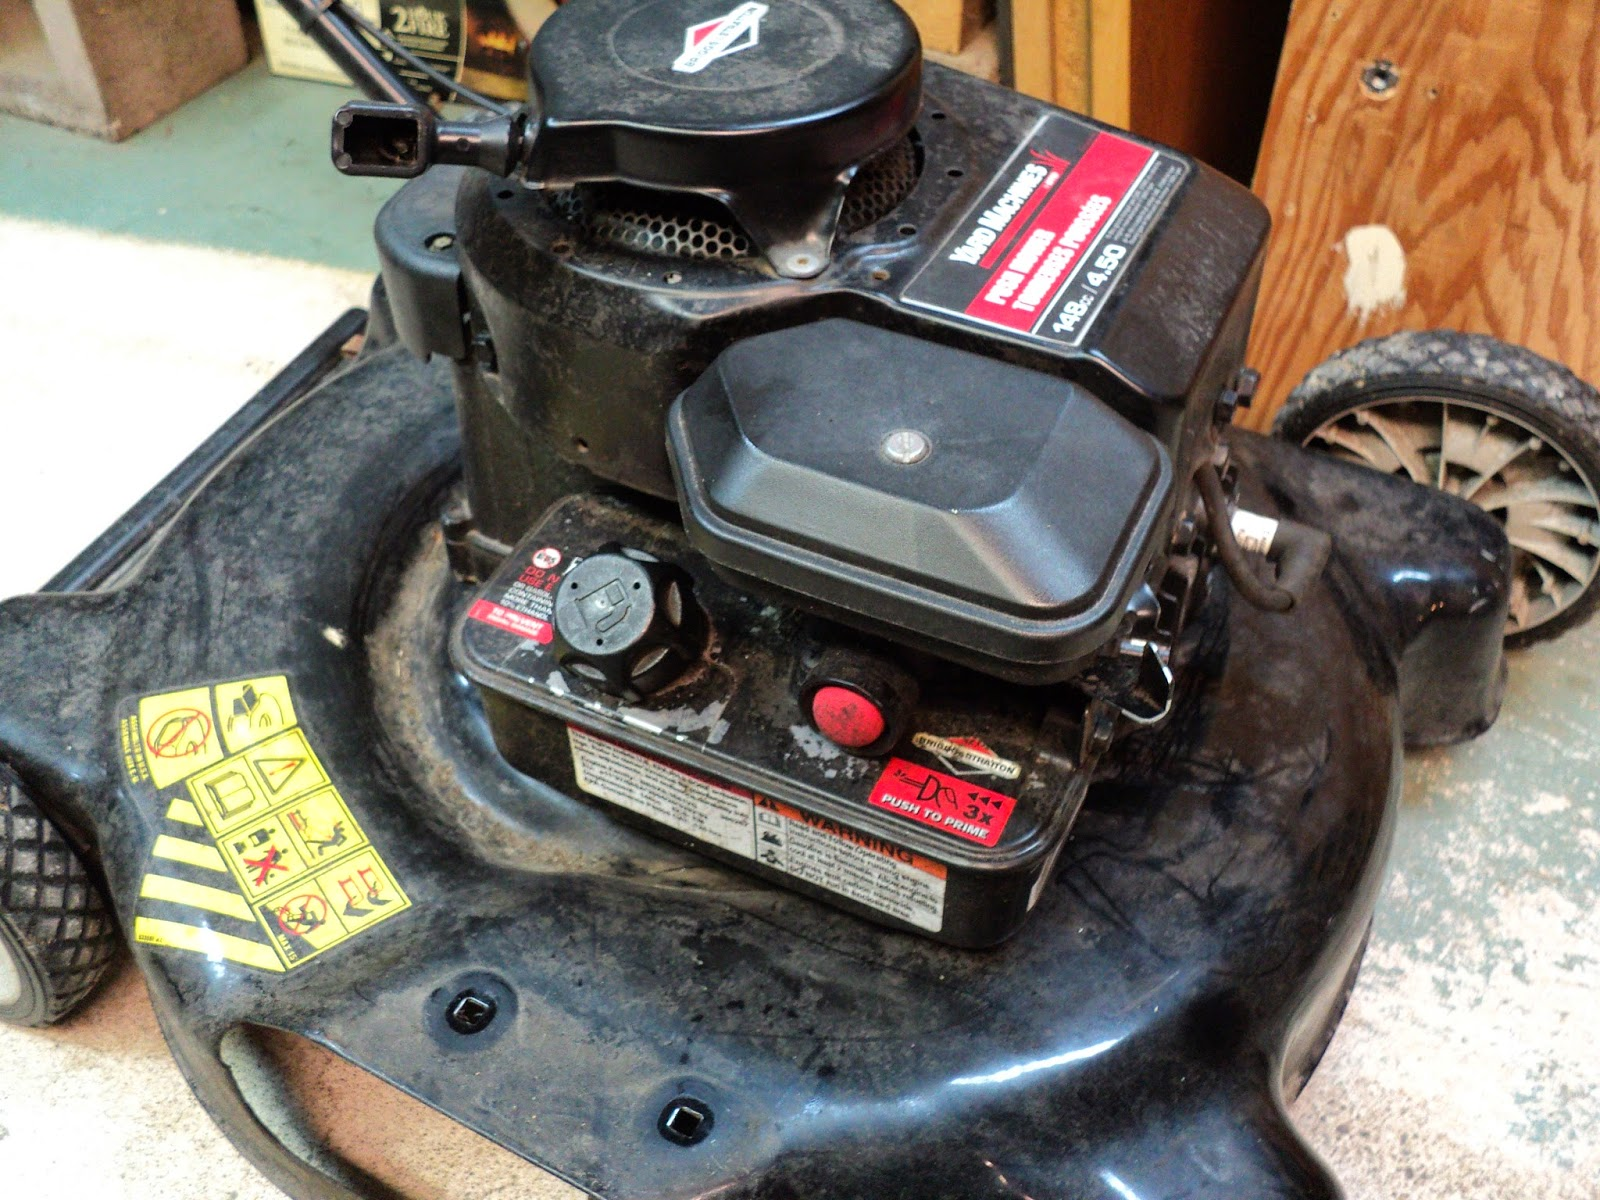 Rouge river workshop briggs stratton model 9s502 carburetor and fuel tank removal